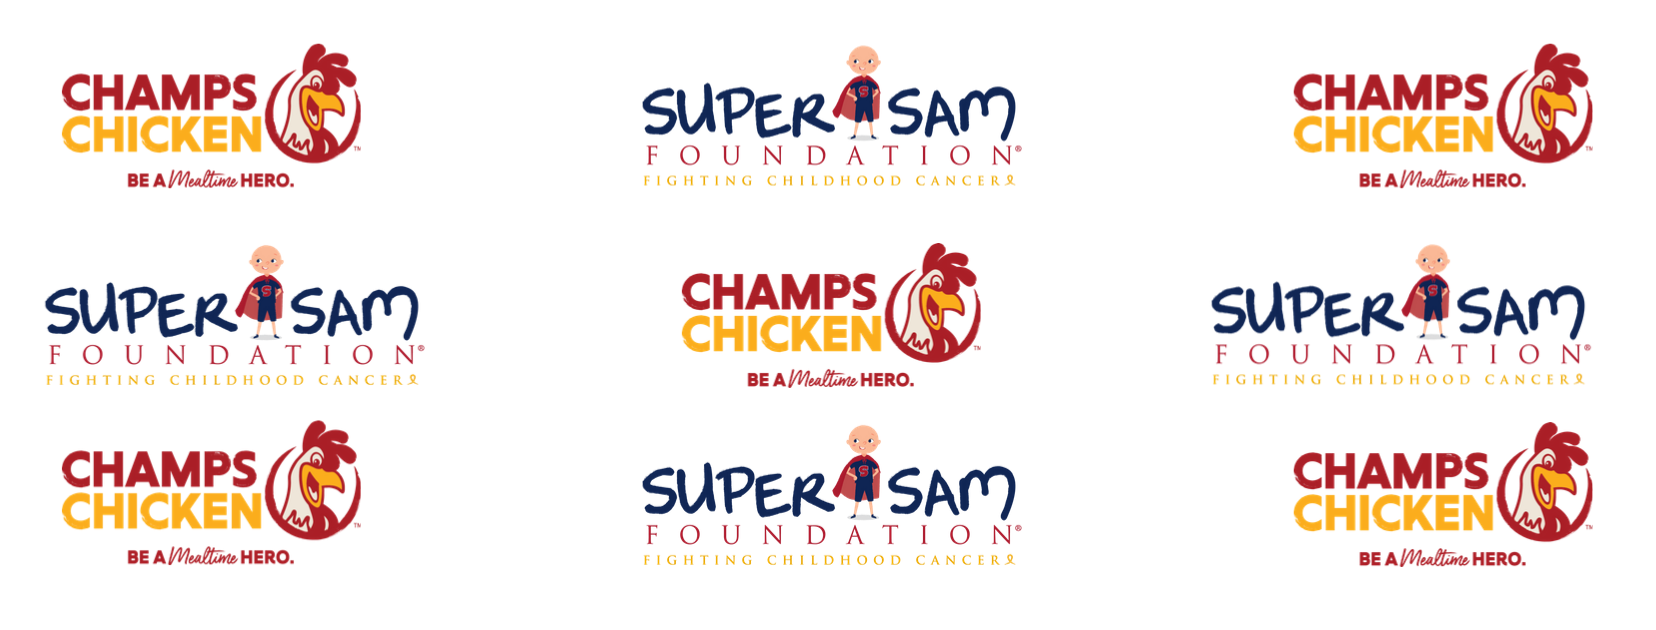 Join Champs Chicken in supporting the Super Sam Foundation as they fight childhood cancer! image